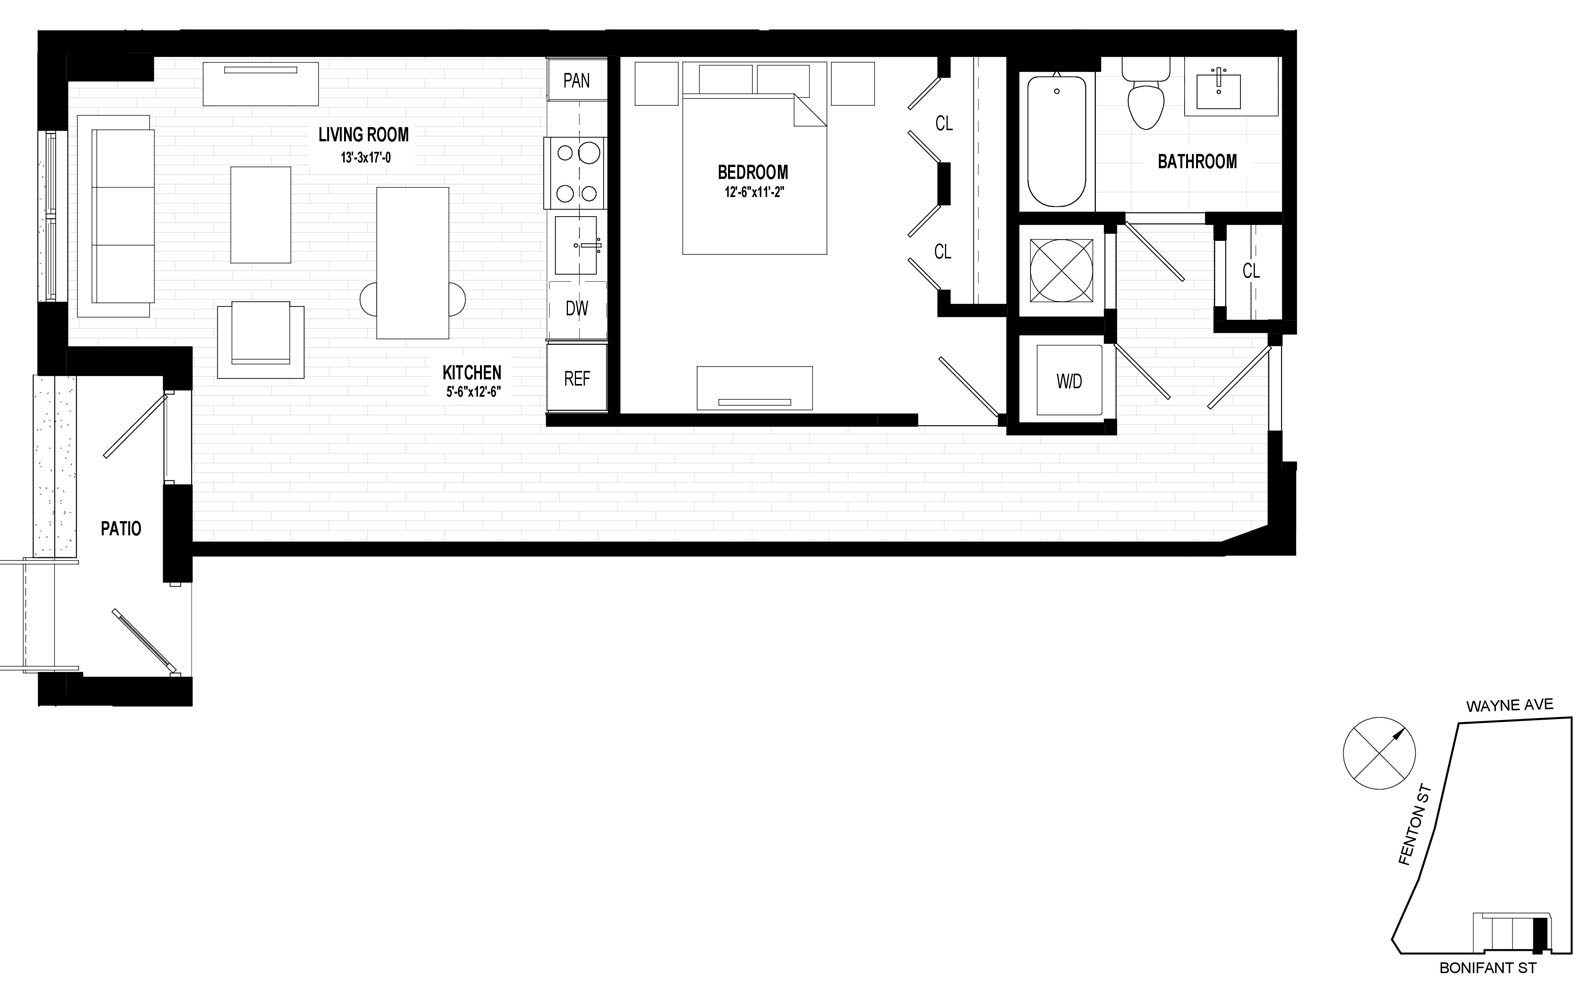 P0578887 761aa22 central a12 722 2 floorplan